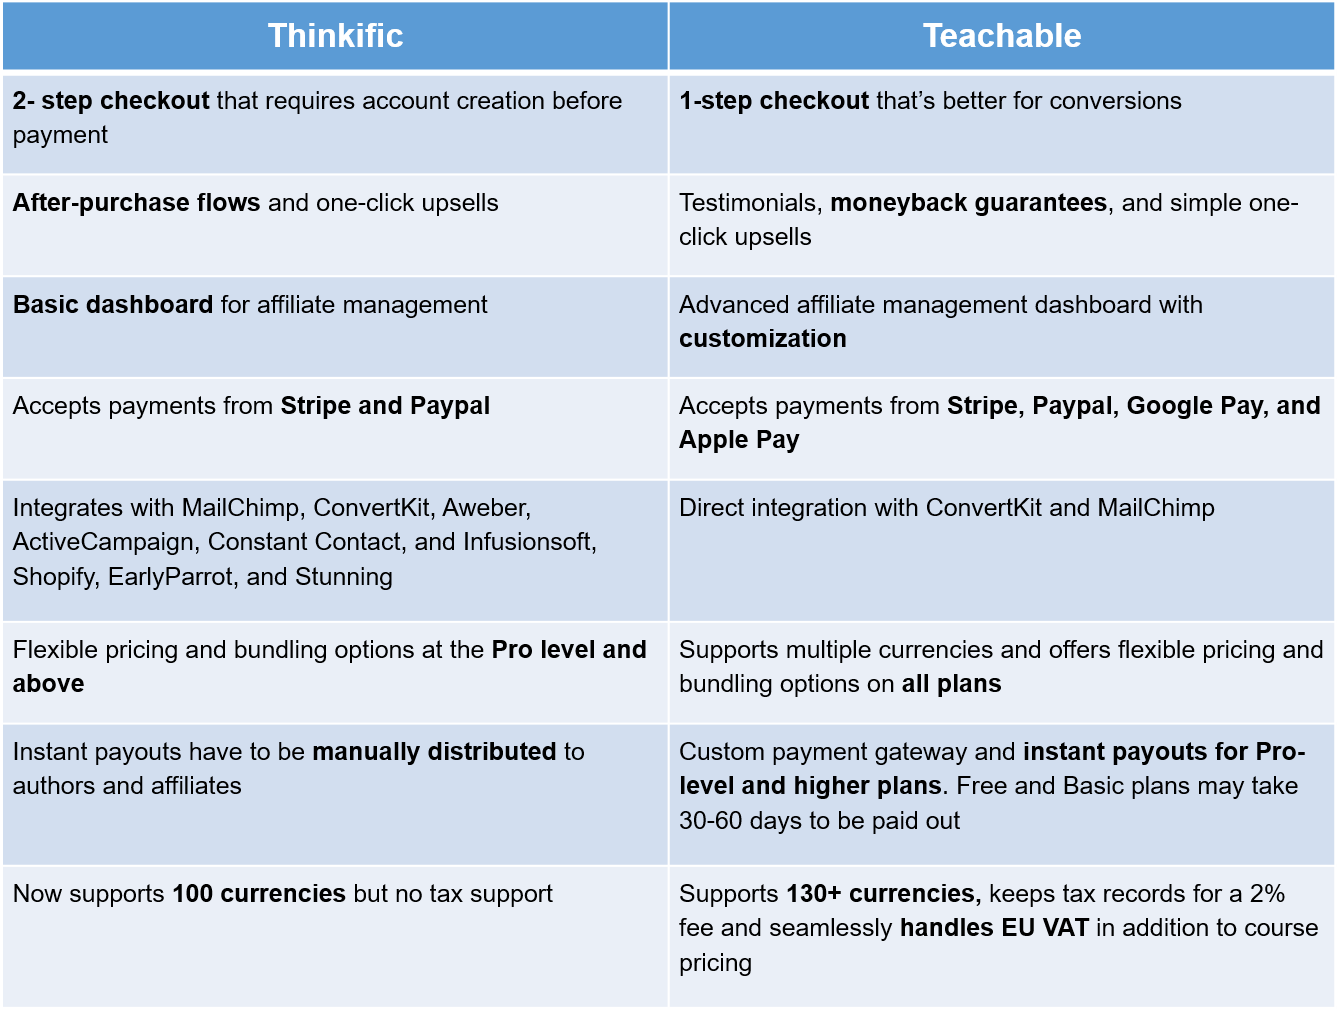 comparison of Thinkific and Teachable